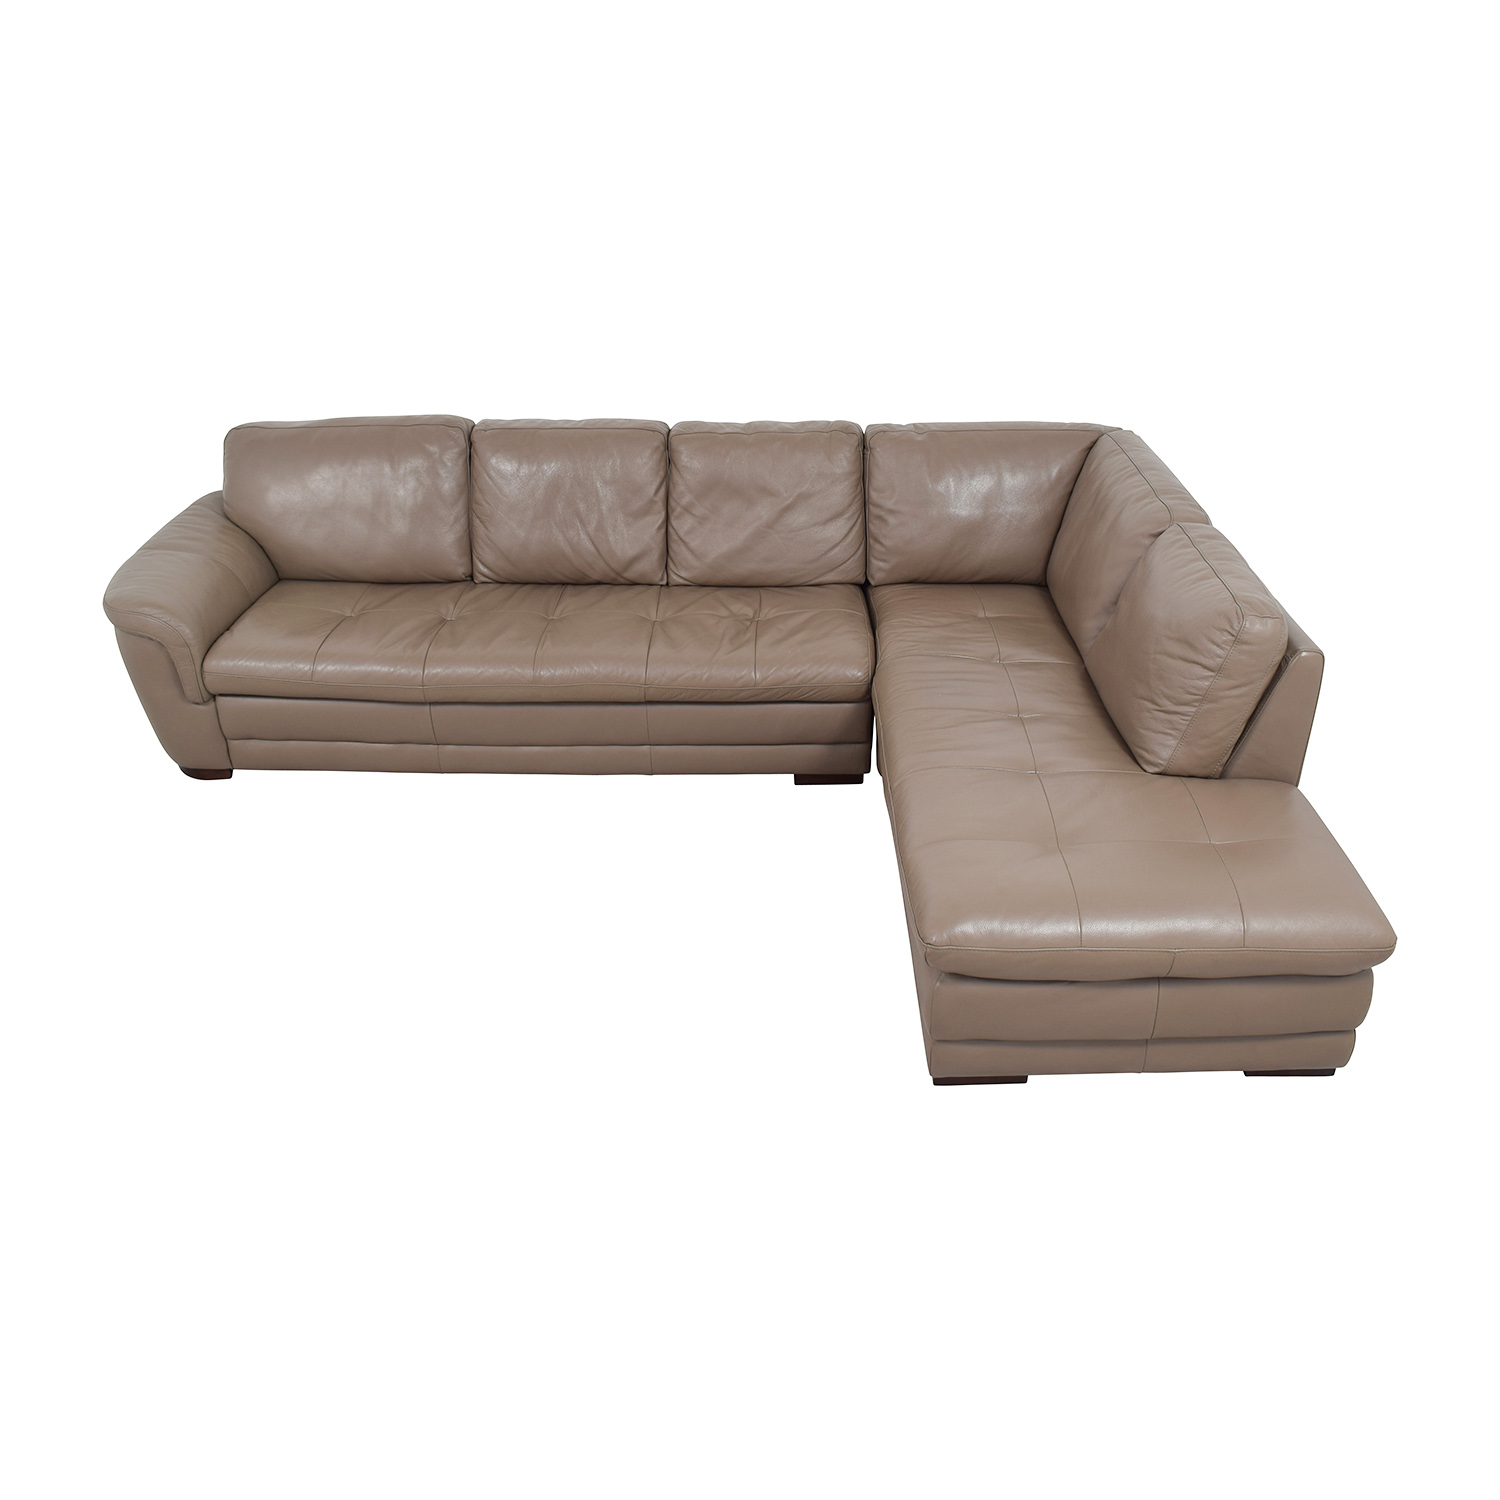 Raymour and Flanigan Raymour & Flanigan Tan Tufted Leather Sectional nj